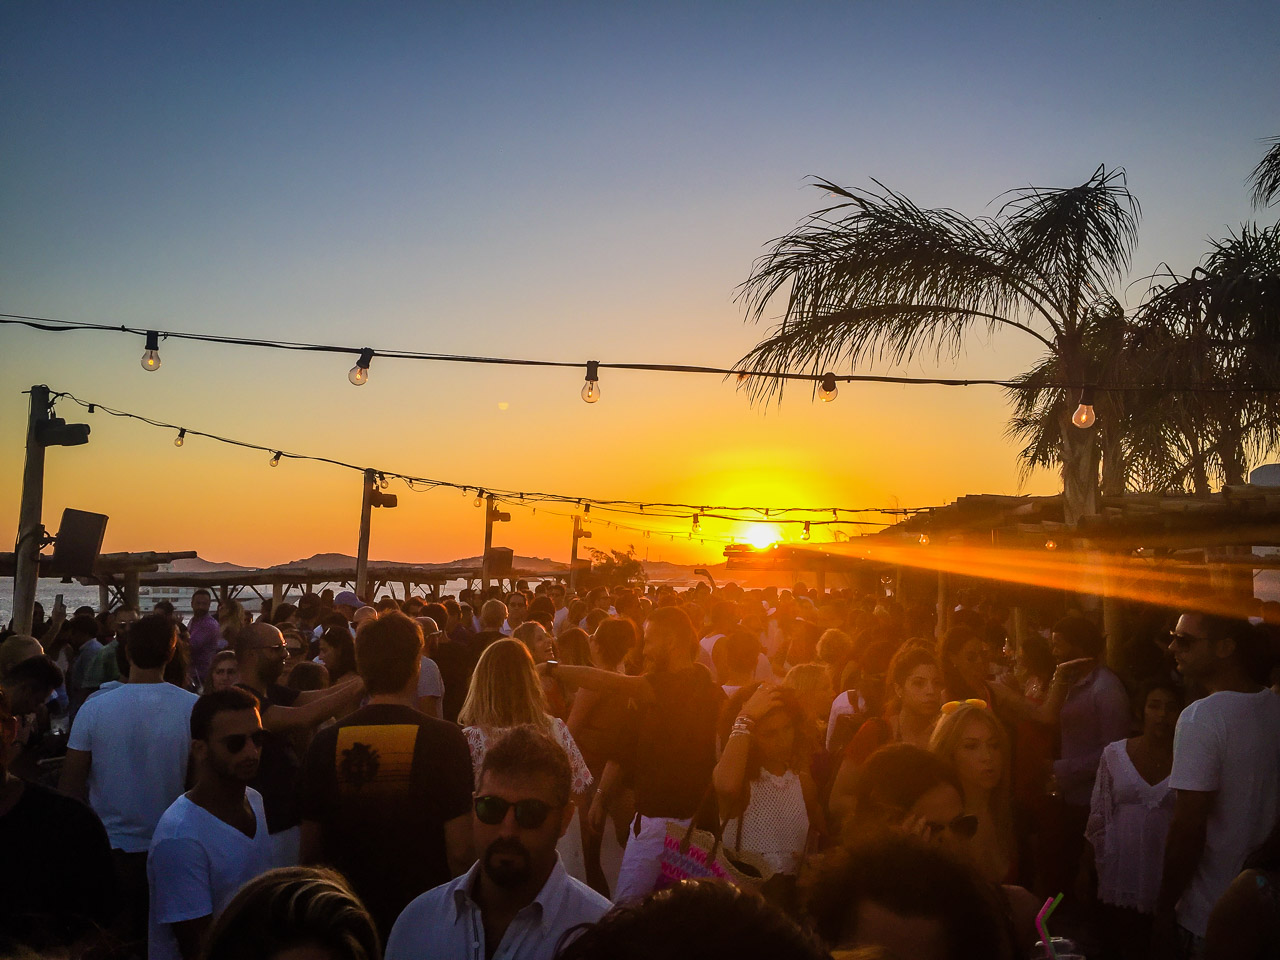 Best Island Beaches For Partying Mykonos St Barts: Travel & Party Guide For Mykonos, Greece